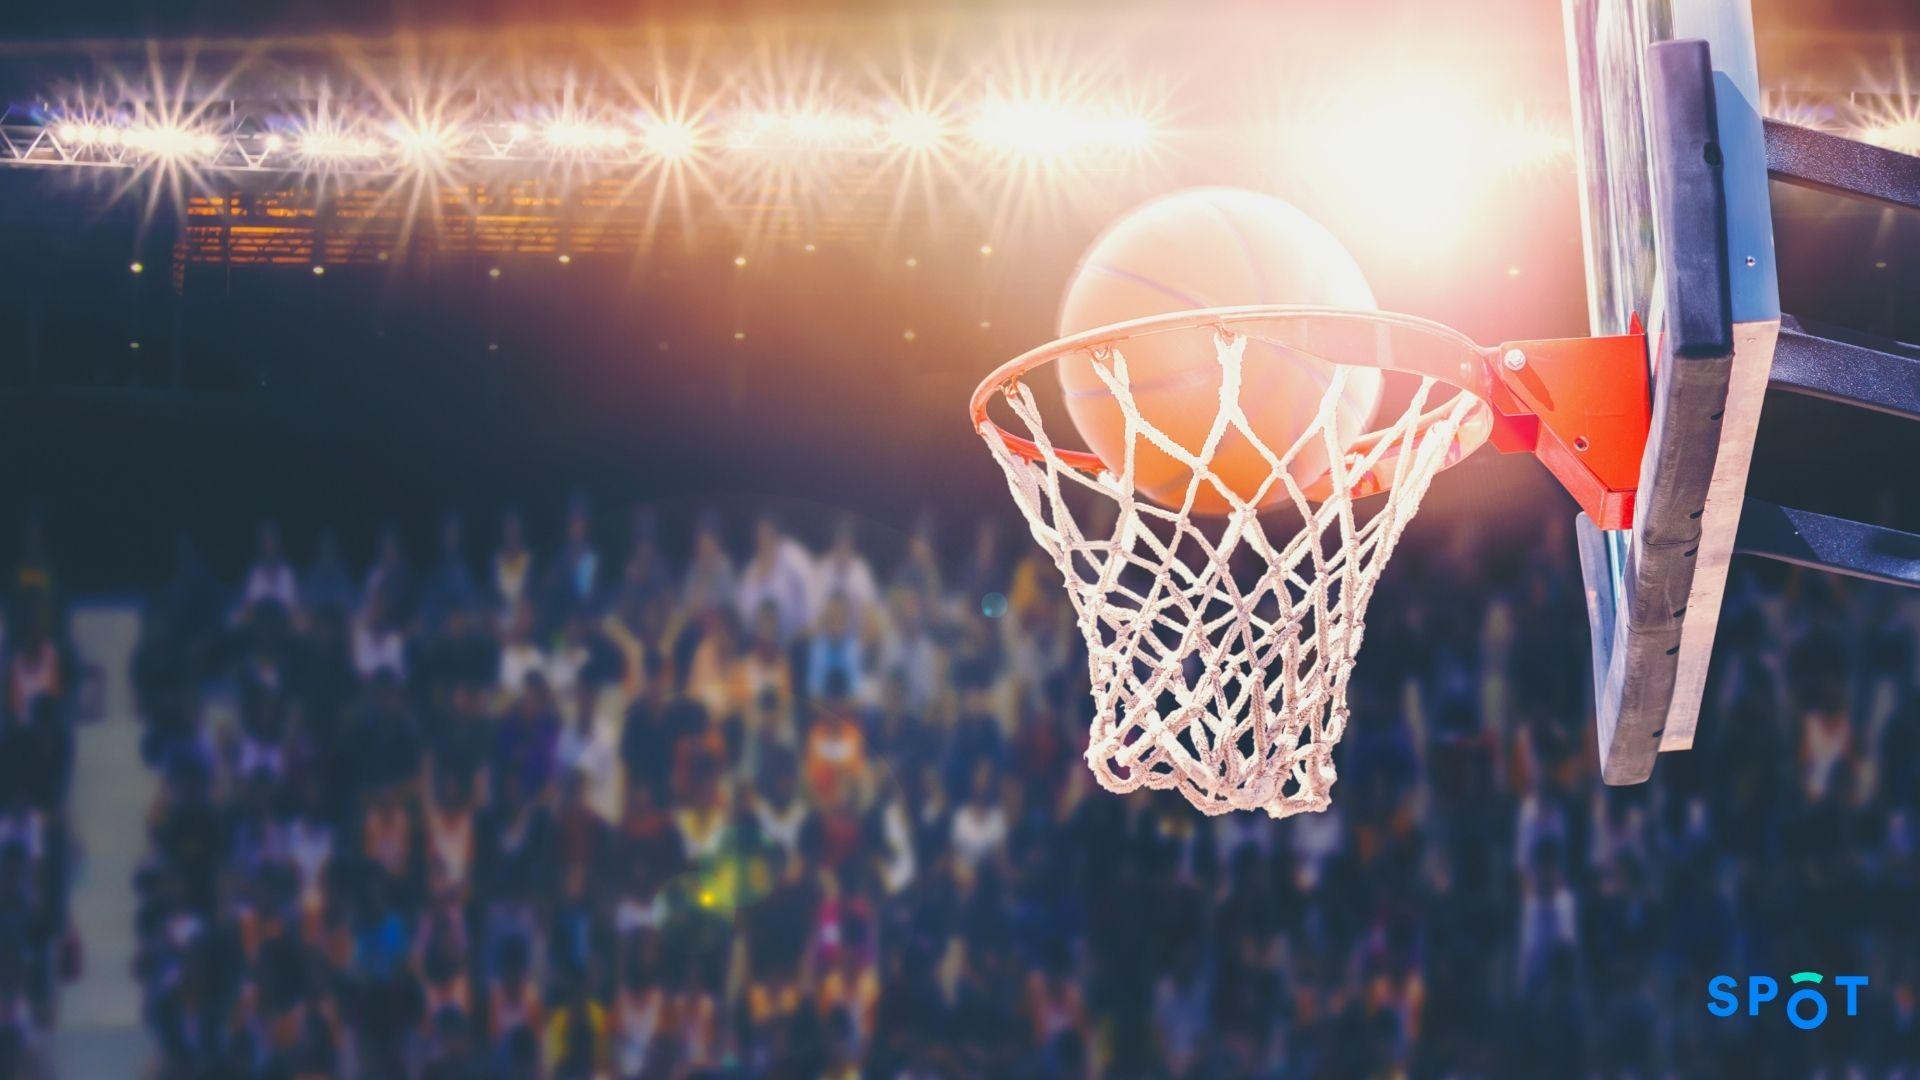 A university basketball game, sporting events make it tough for students to move and park sustainably